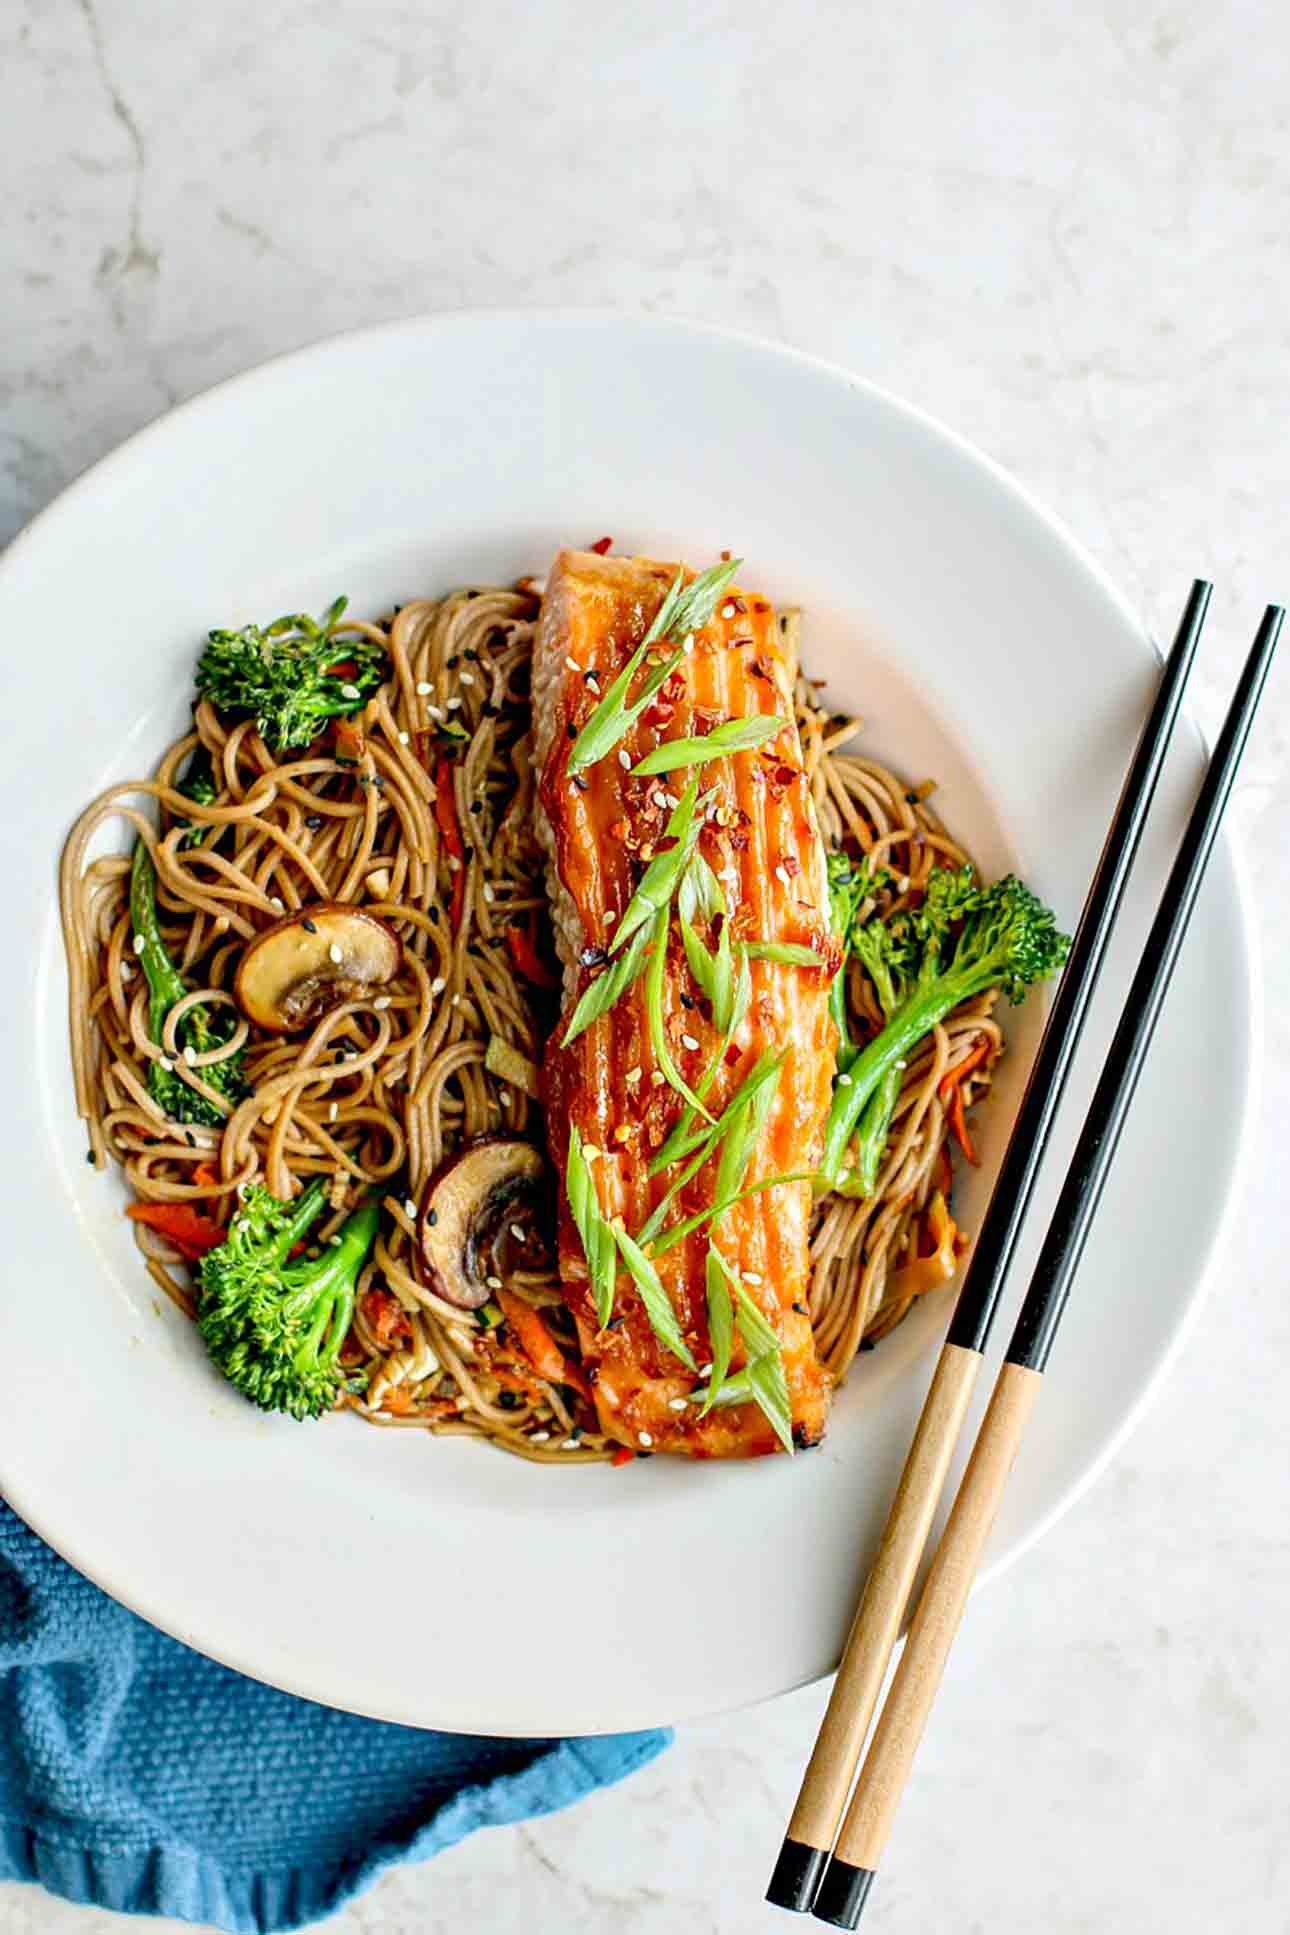 {Cooking with Friends} Miso Glazed Salmon With Sesame Soba Noodles, by Killing Thyme